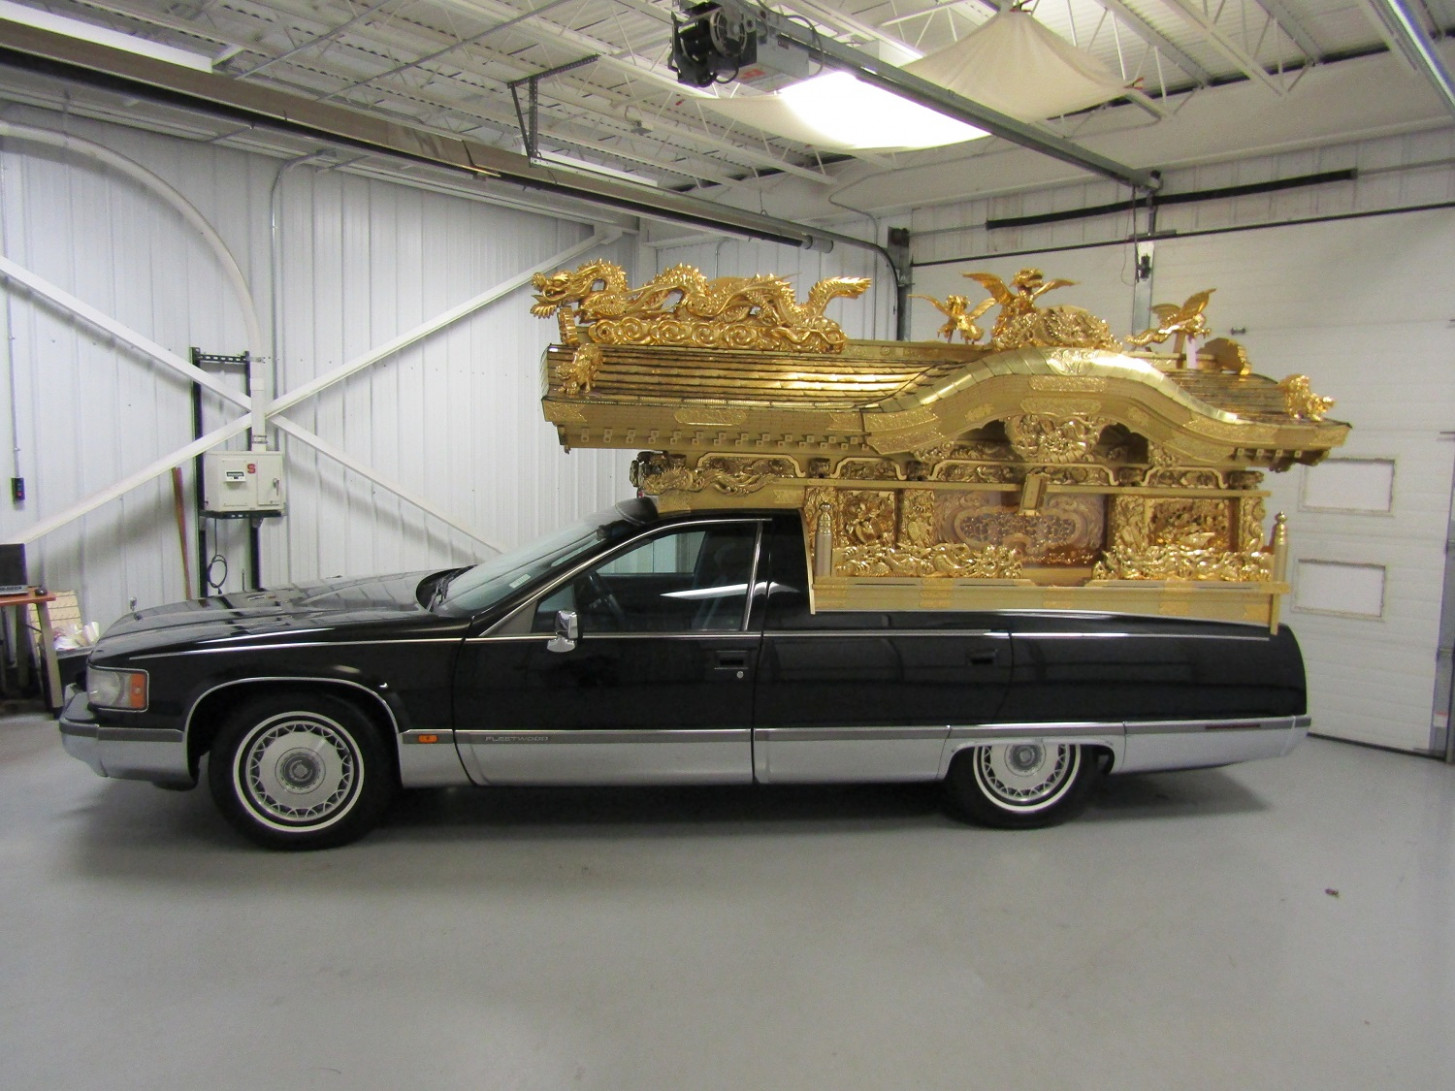 8 Cadillac Fleetwood Hearse For Sale | GM Authority - cadillac hearse 2020